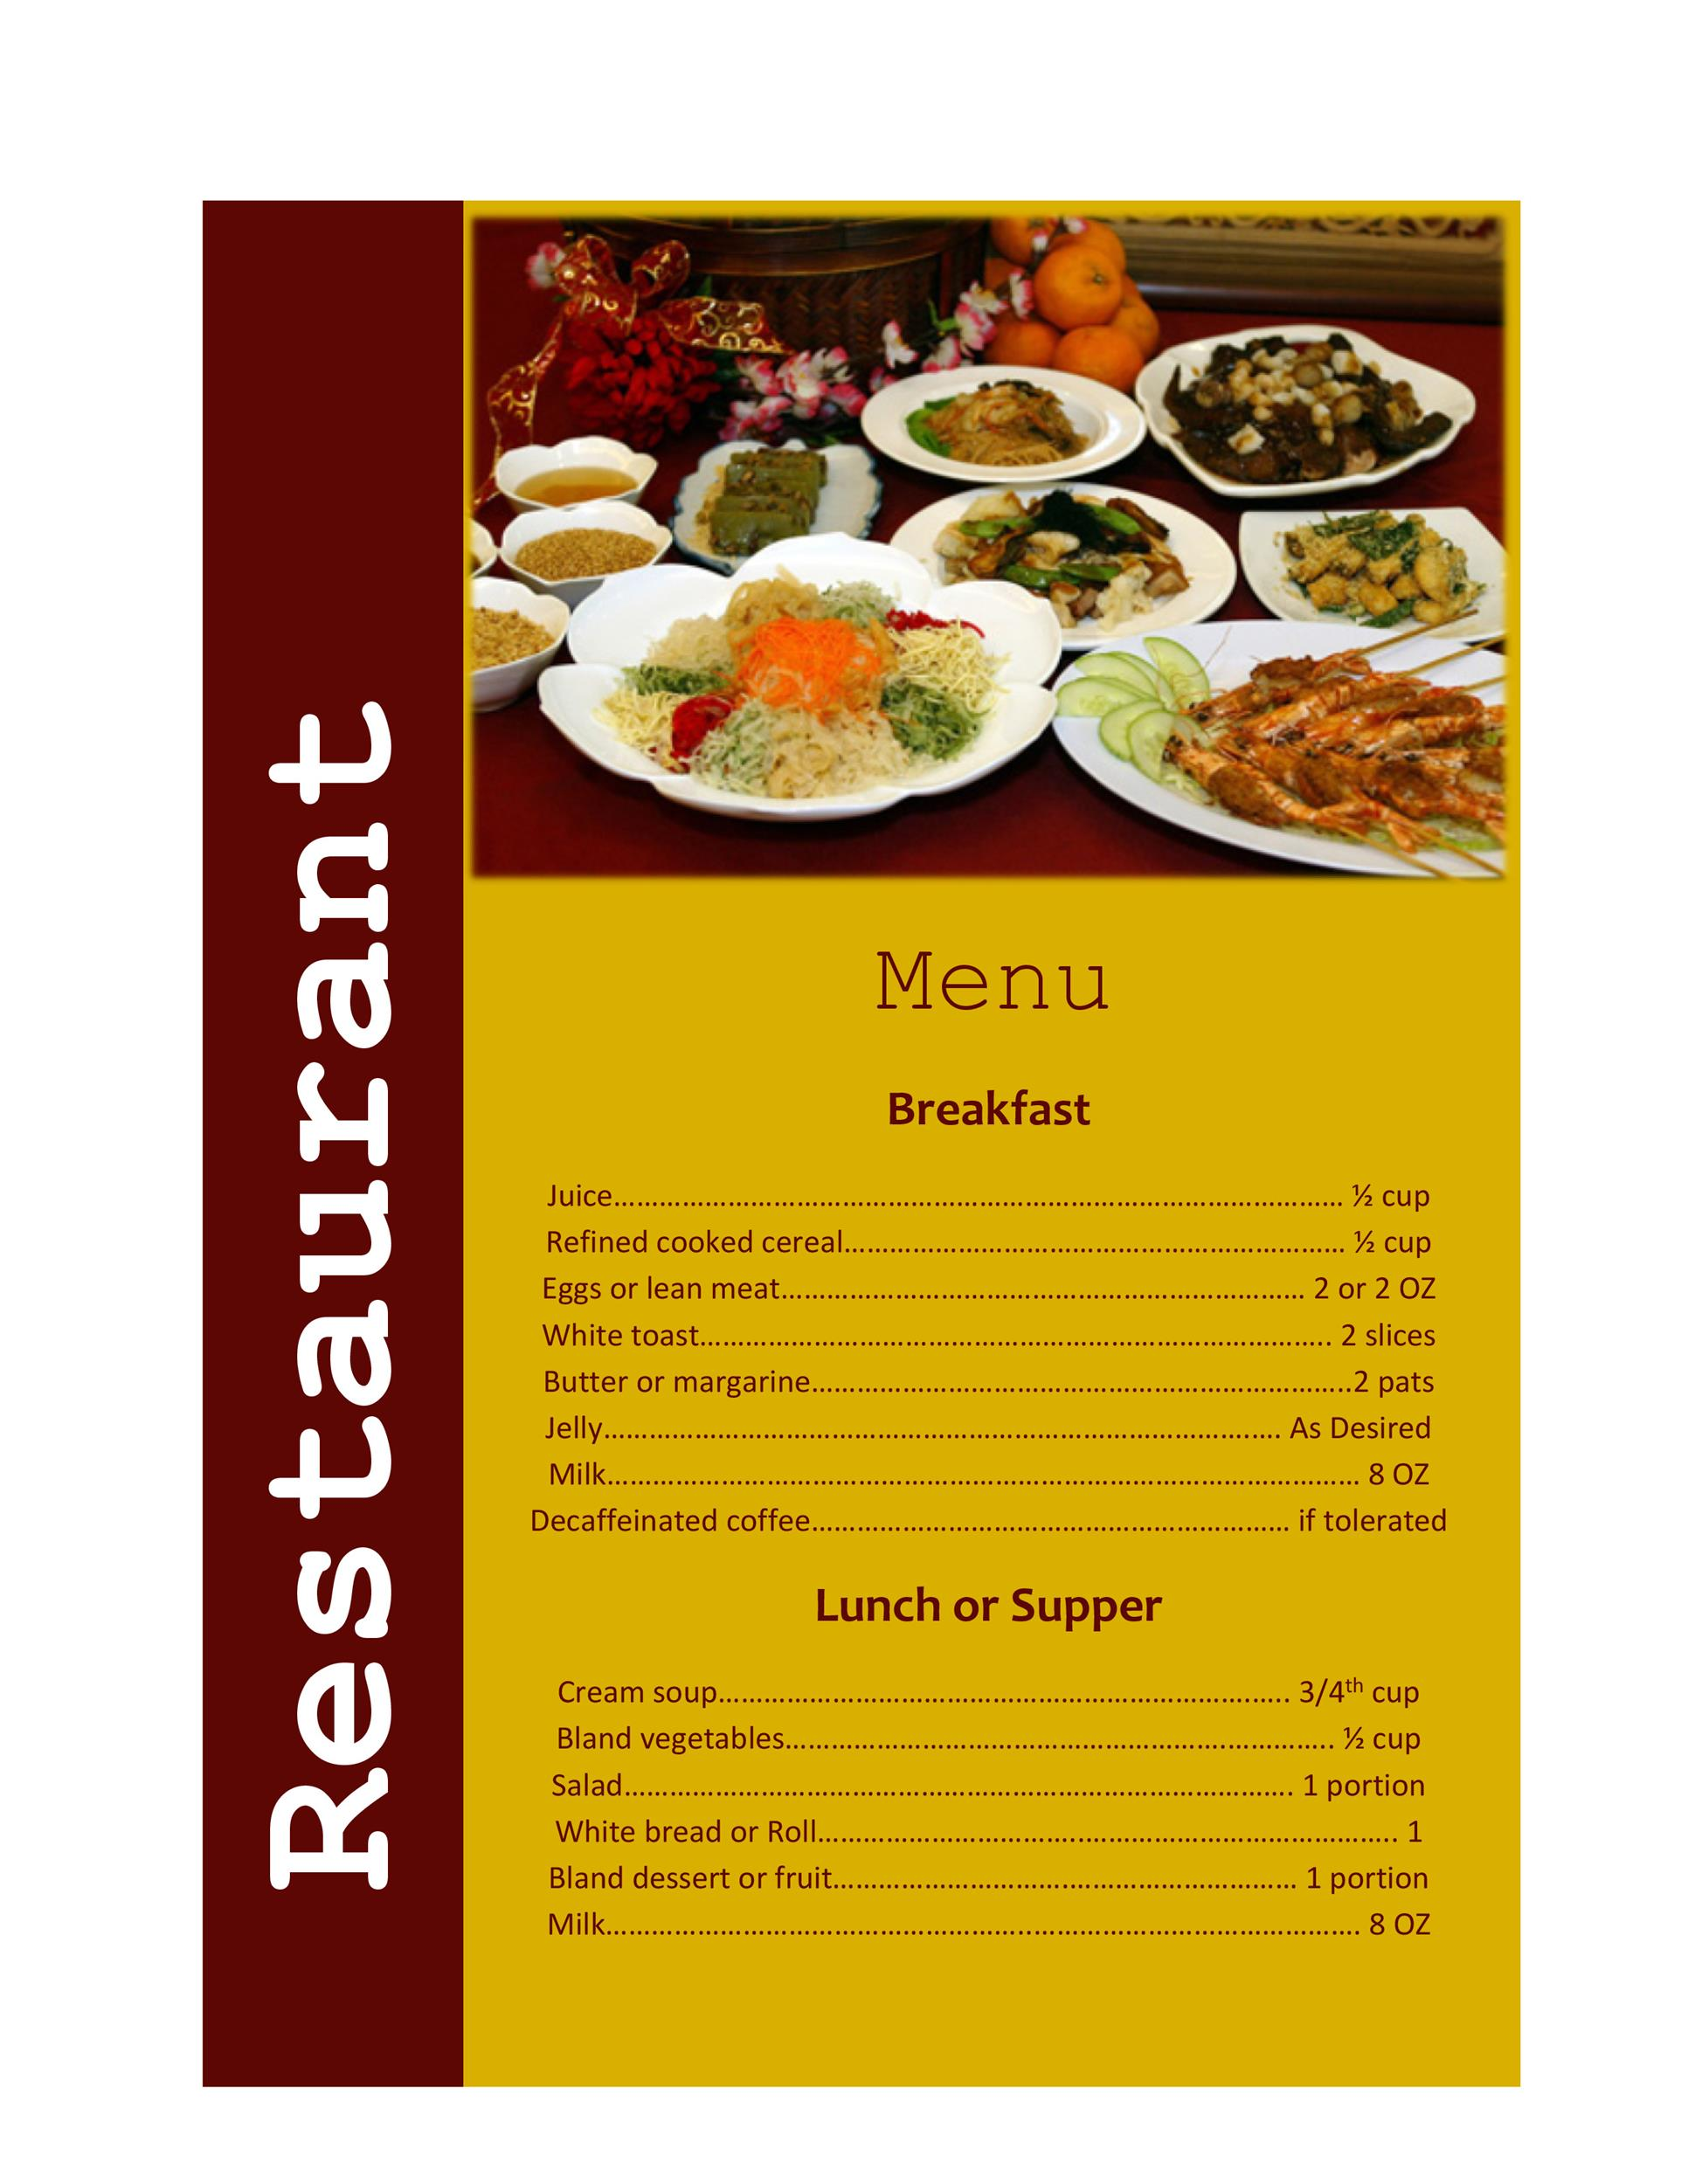 Restaurant Menu Templates Designs Template Lab - Delivery menu template